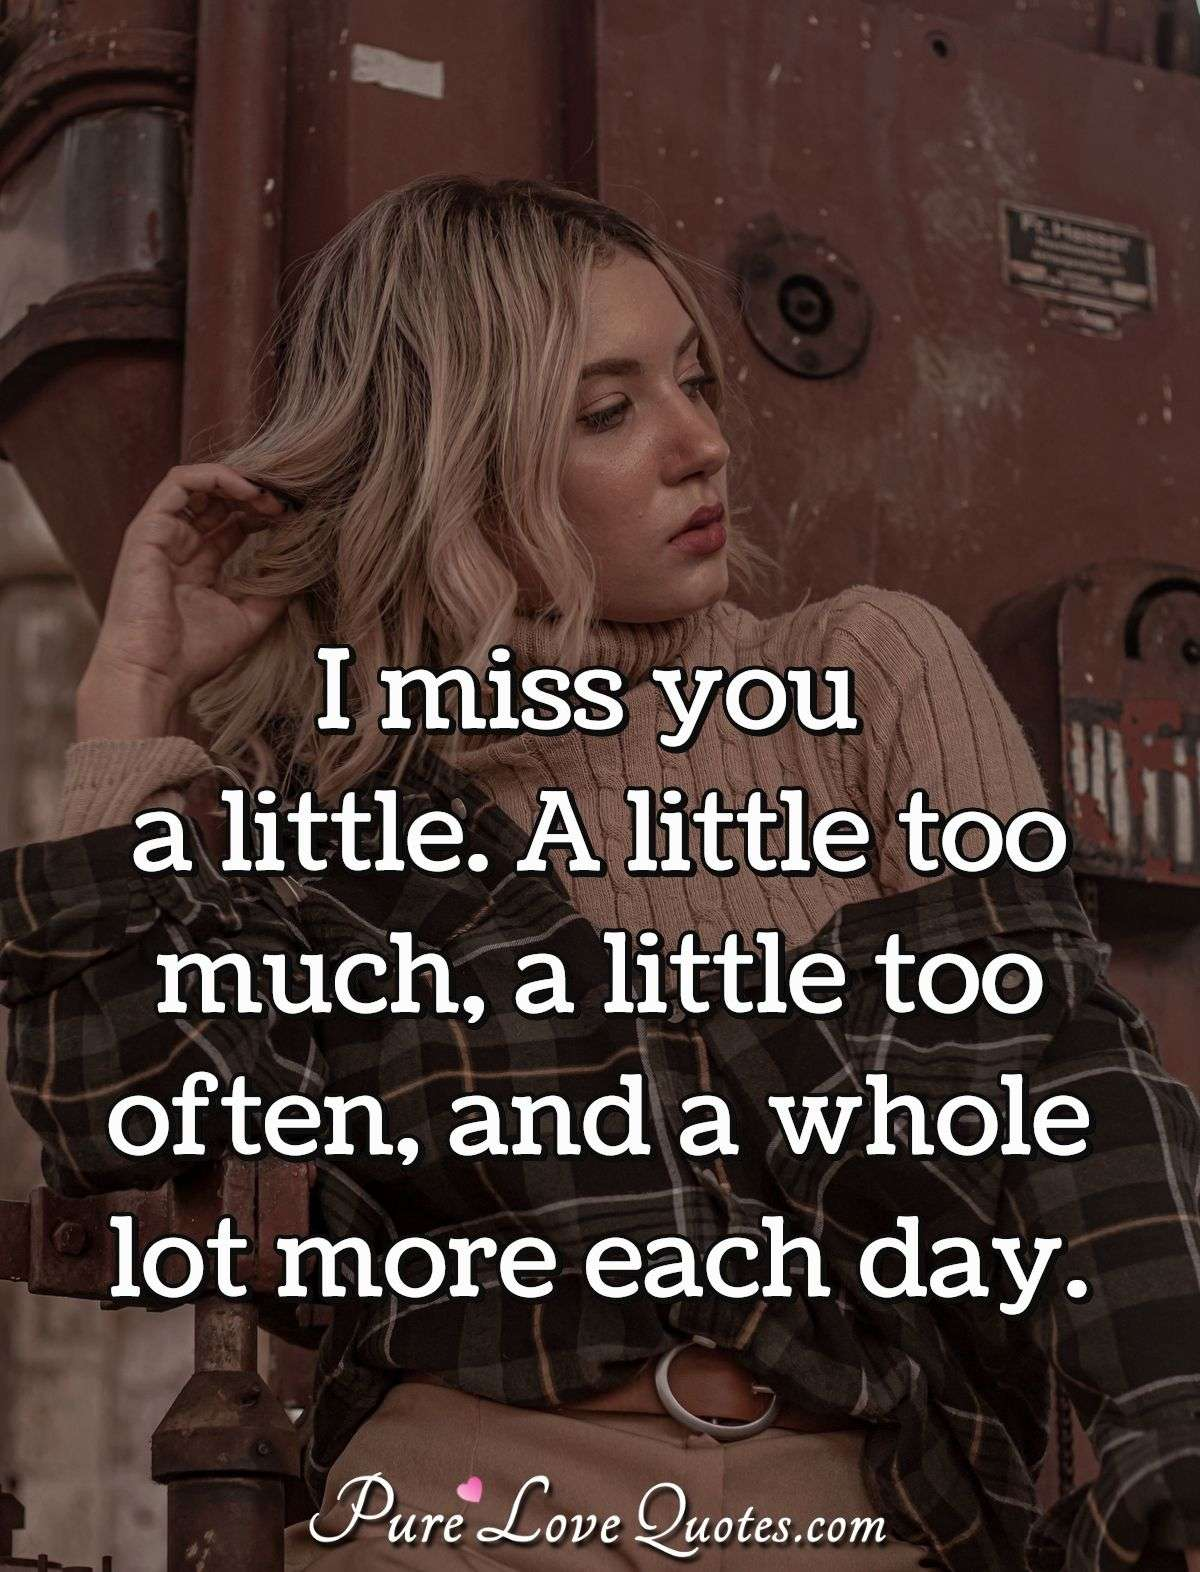 I miss you a little. A little too much, a little too often, and a whole lot more each day. - Anonymous